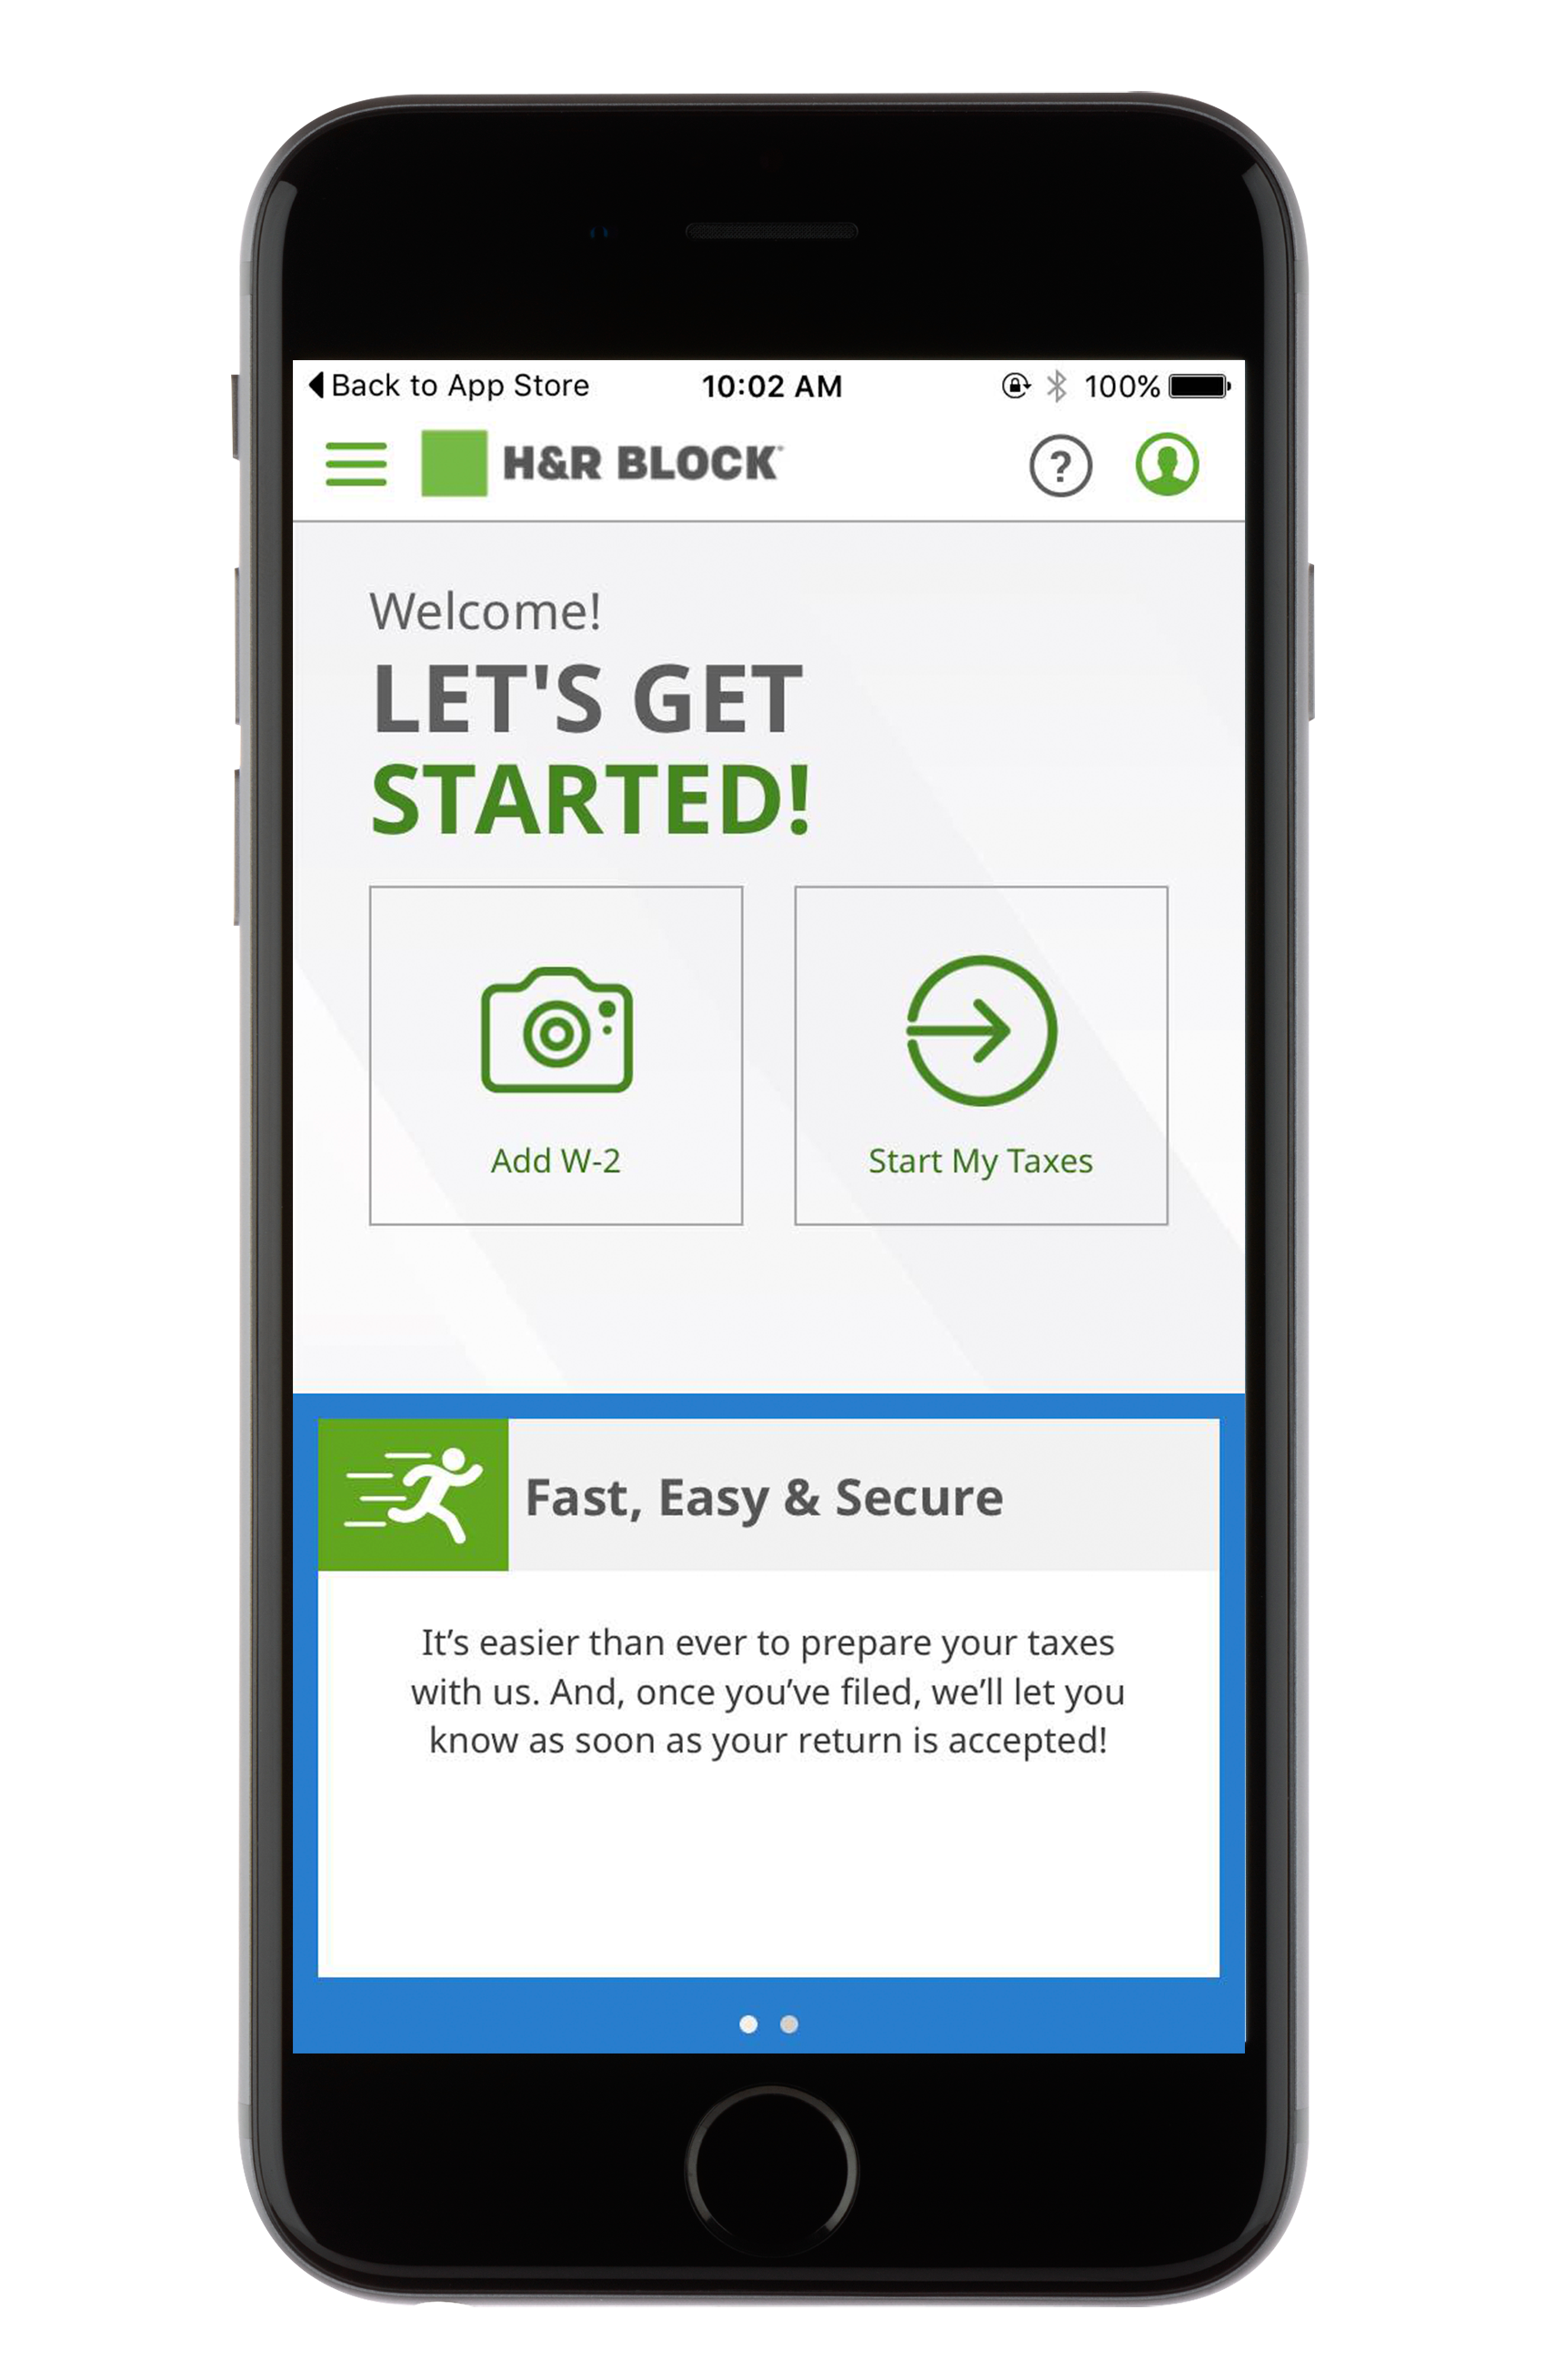 H&R Block Tax Preparation Mobile App